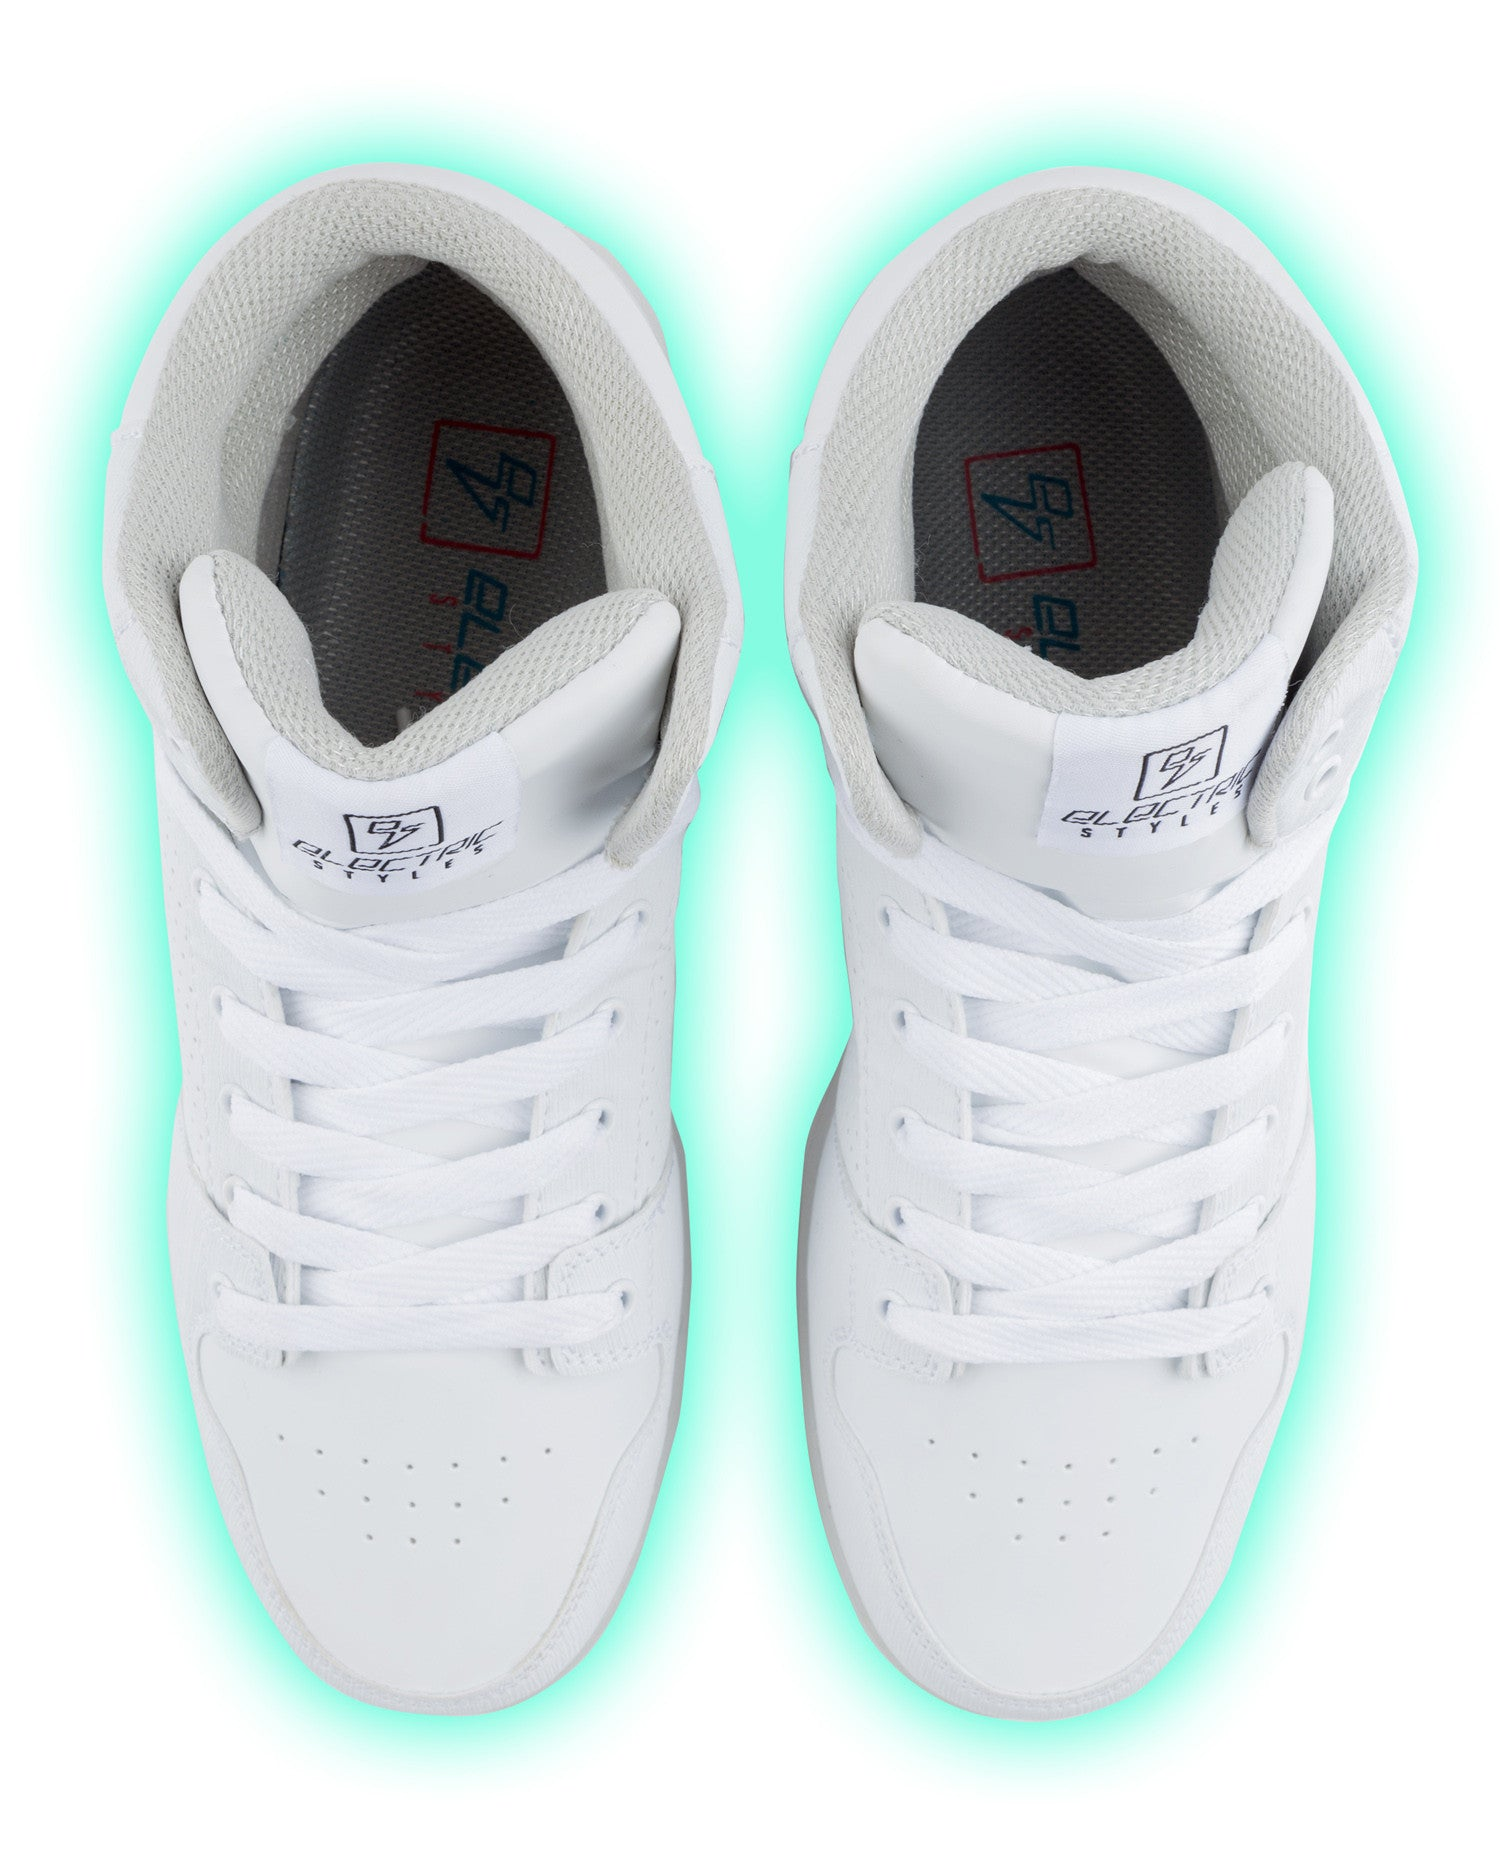 J-Walker - Light Lynk Shoes ( White Leather ) - Electric Styles | World's Number 1 Light Up Shoe Store - {product_type}} -  - 2